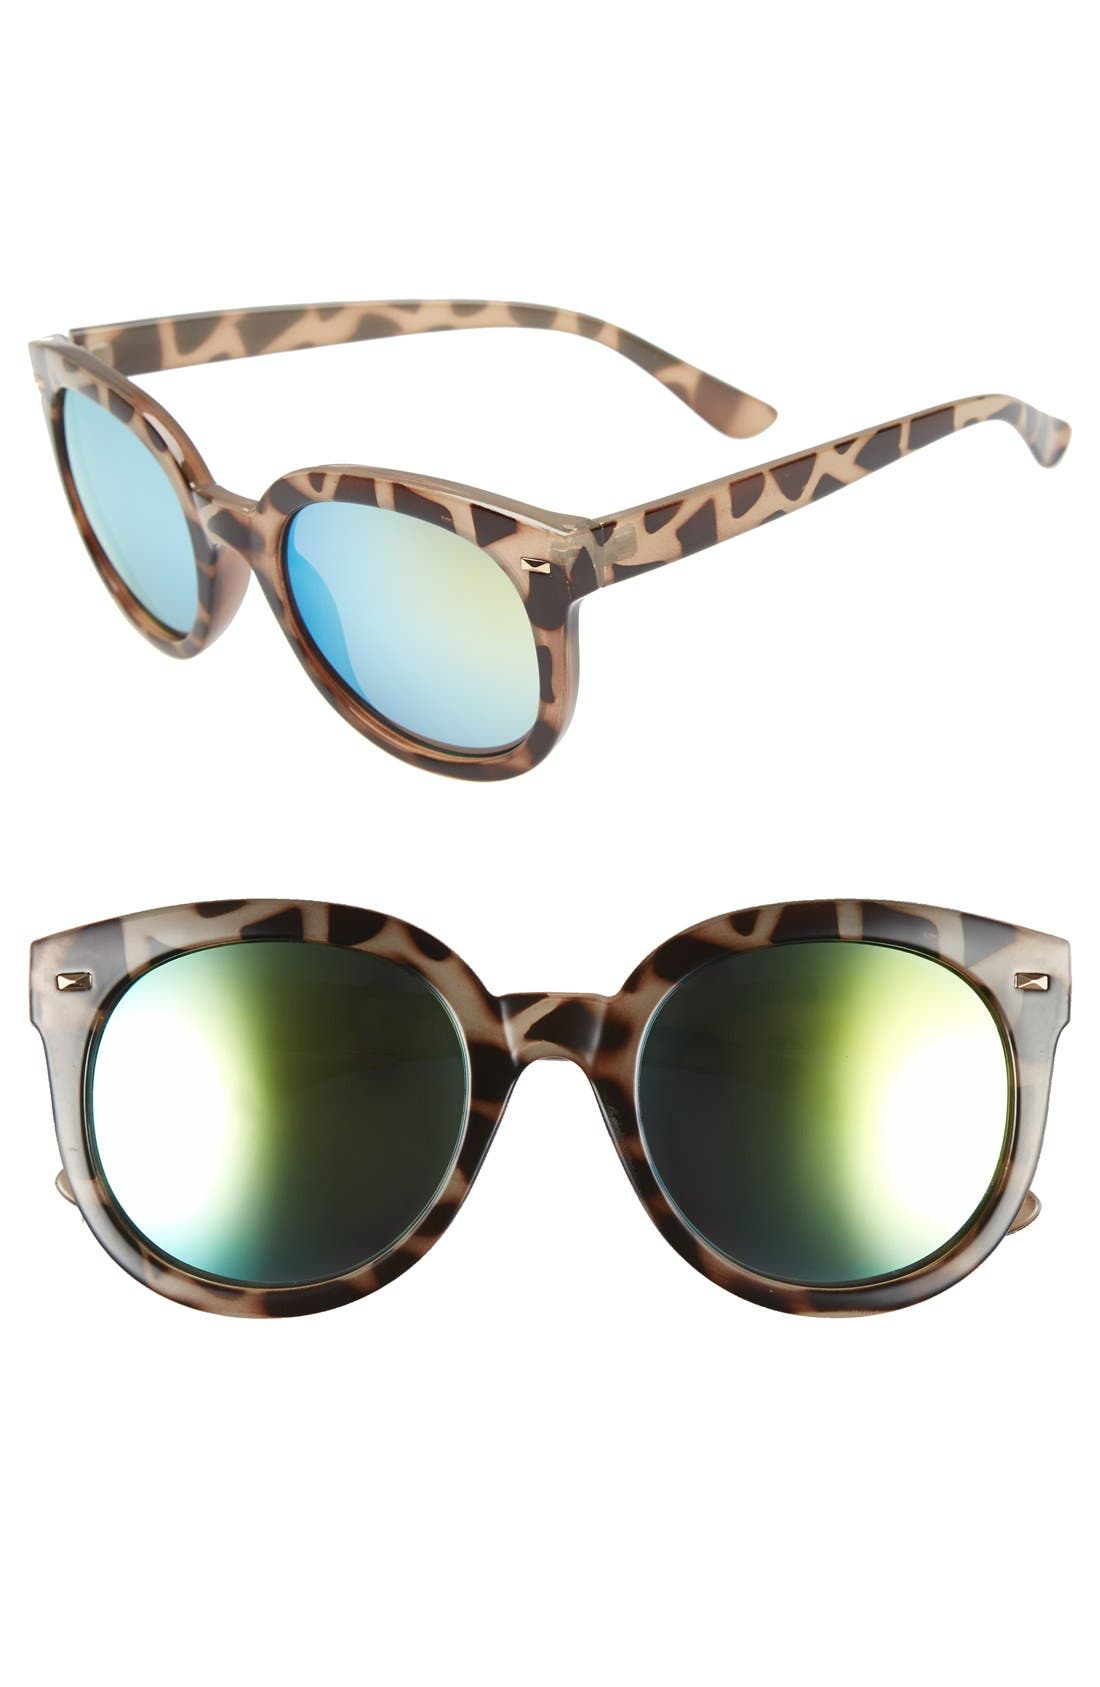 Alternate Image 1 Selected - BP. 52mm Oversize Mirrored Sunglasses